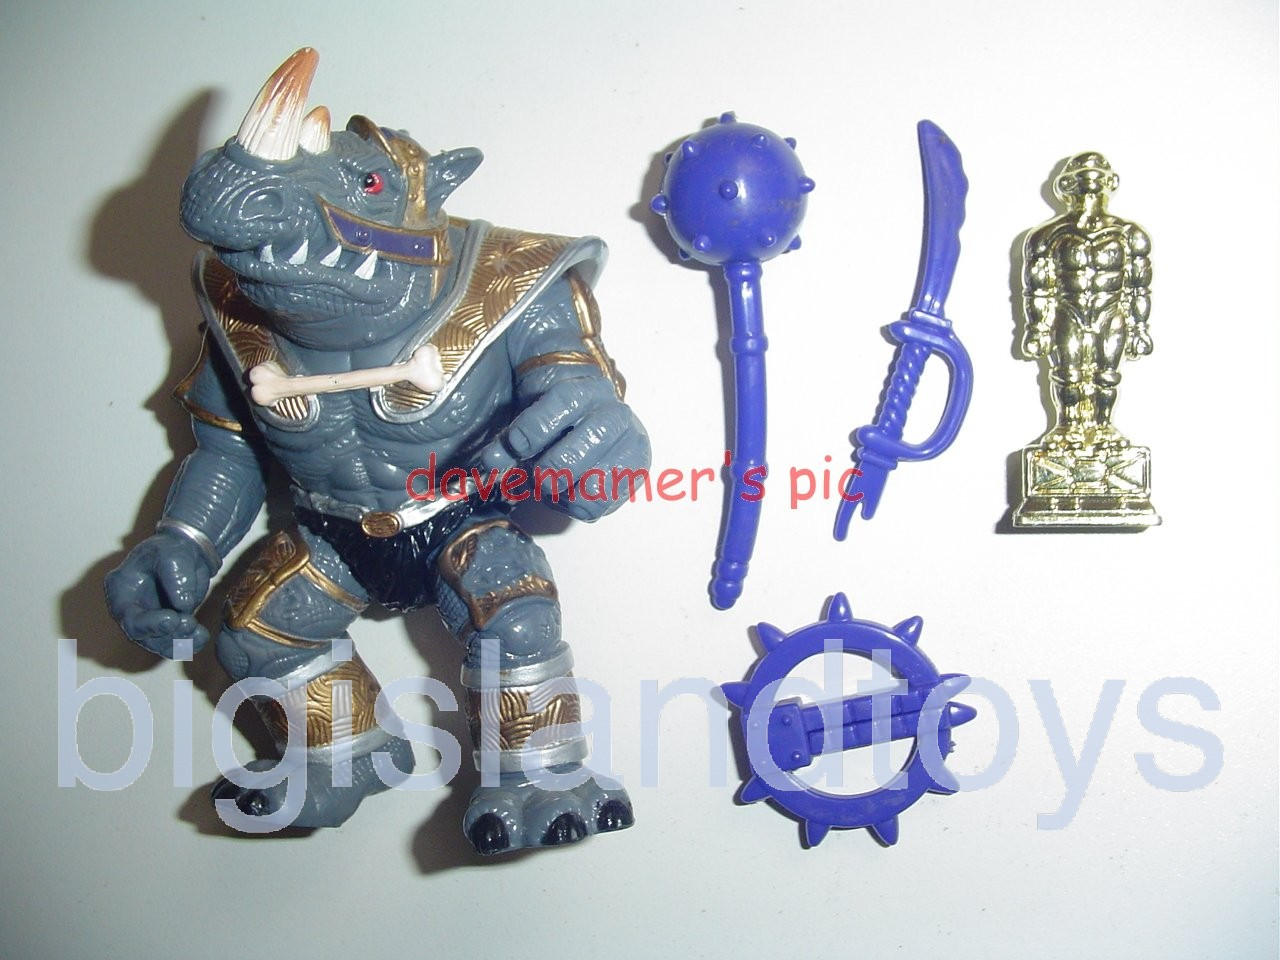 Teenage Mutant Ninja Turtles 1994 Figures       GATEKEEPER ROCKSTEADY